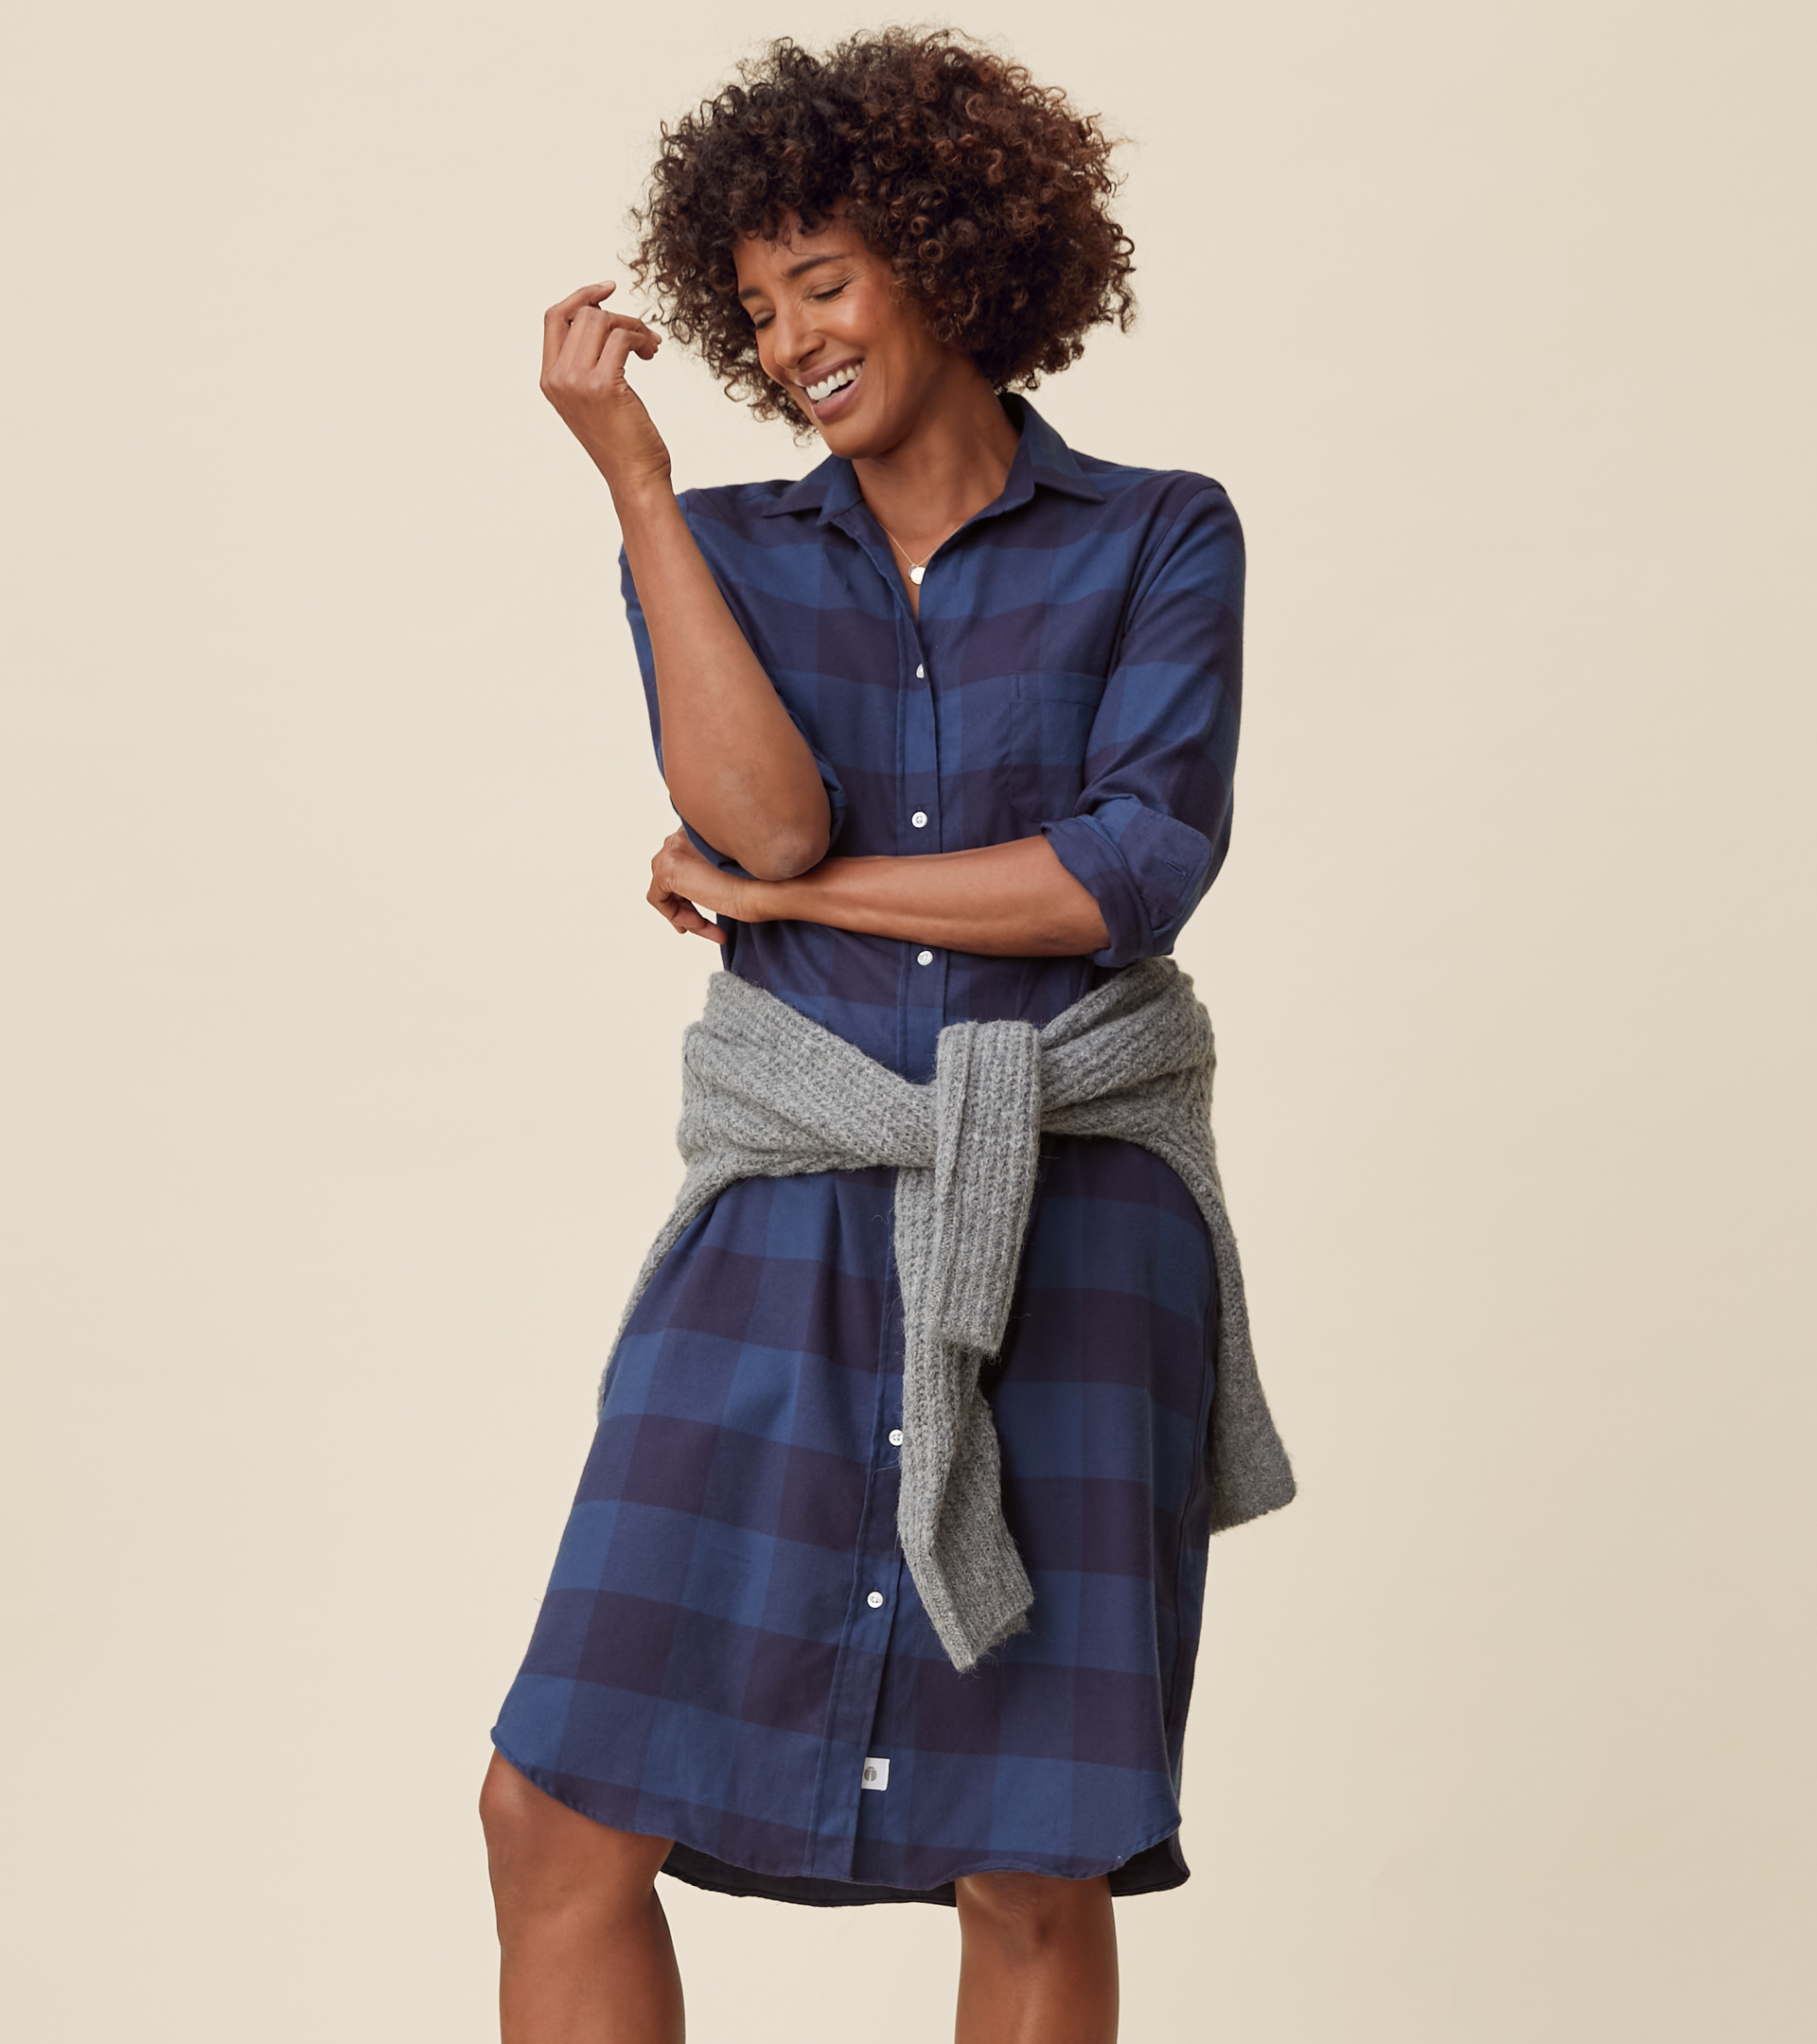 Image of The Hero Midi Dress Navy and Slate Check, Feathered Flannel